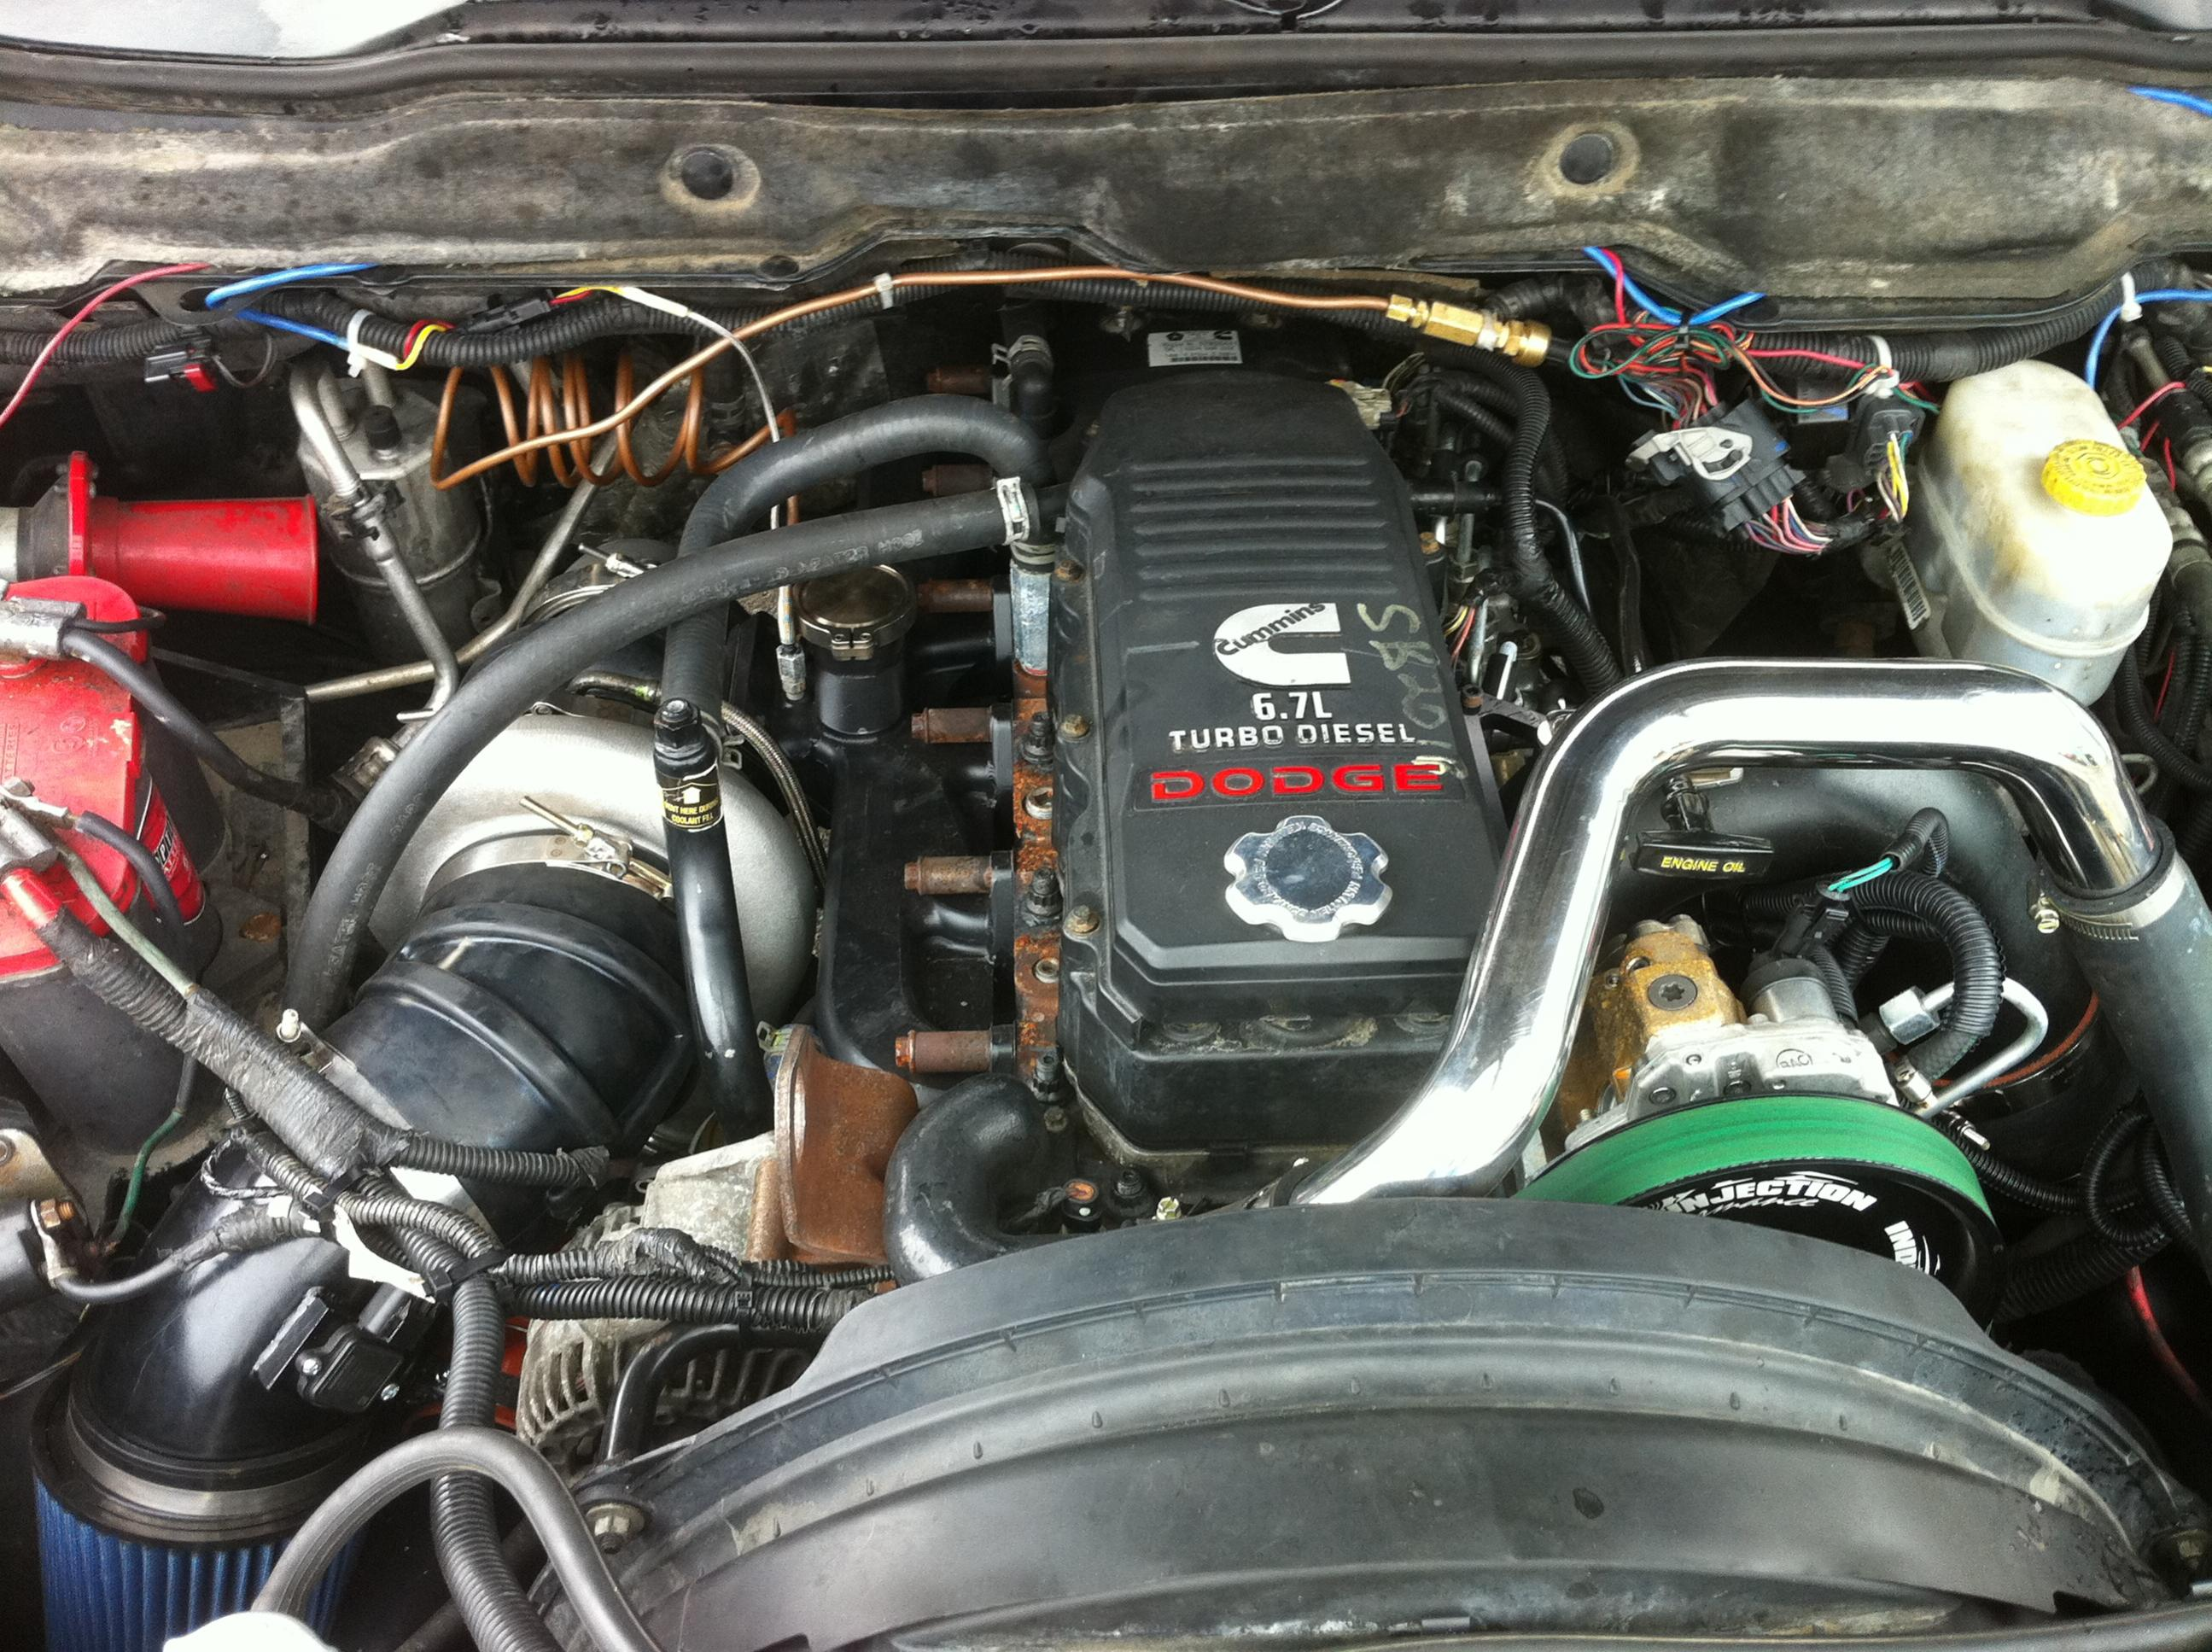 S478 T4 - New / Used Motor Build....-002.jpg